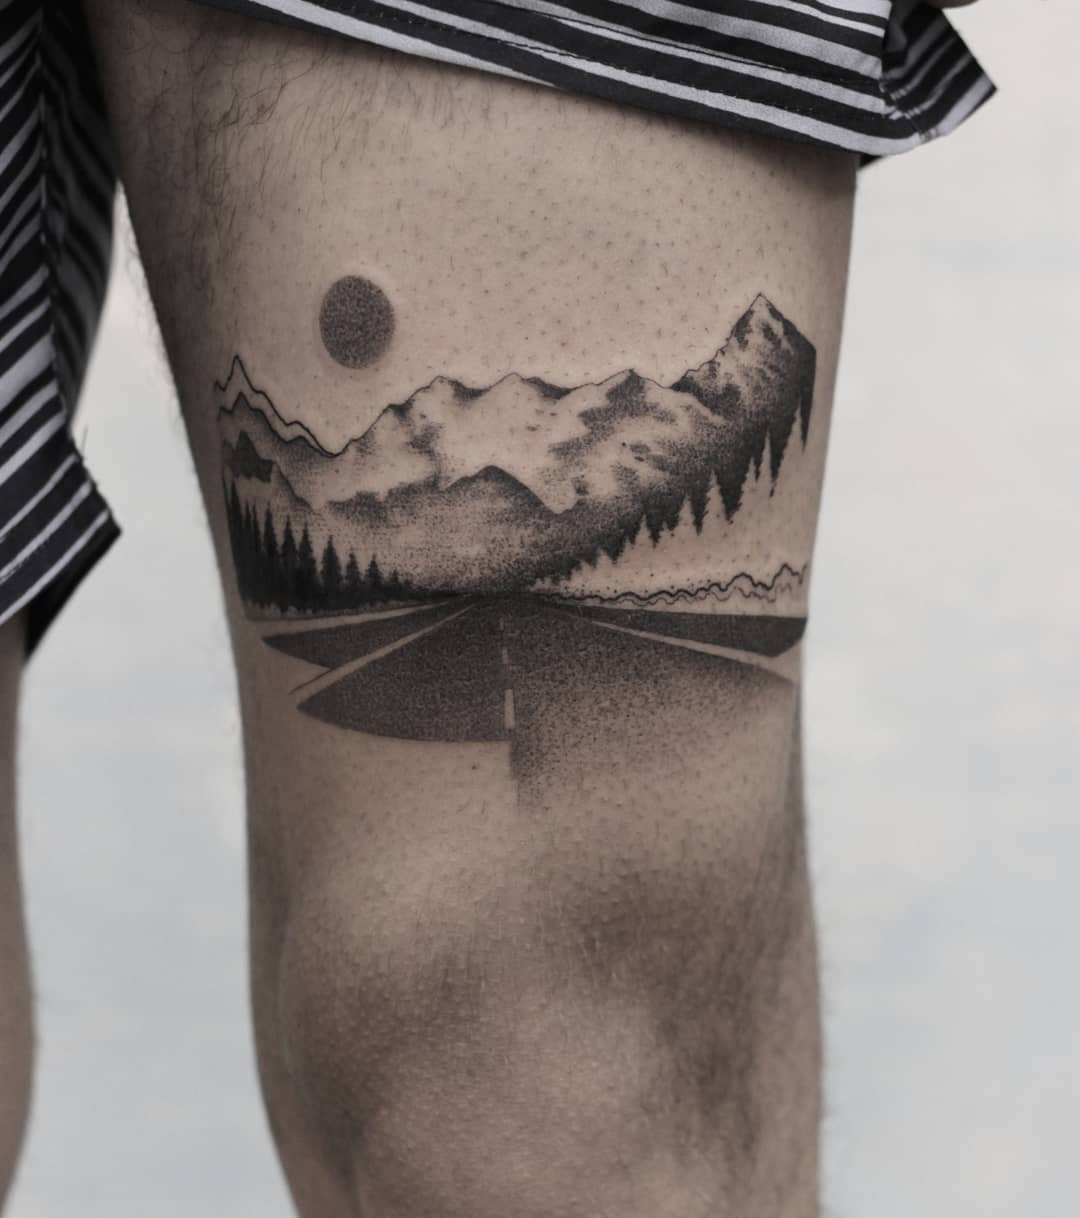 Road tattoo on the thigh